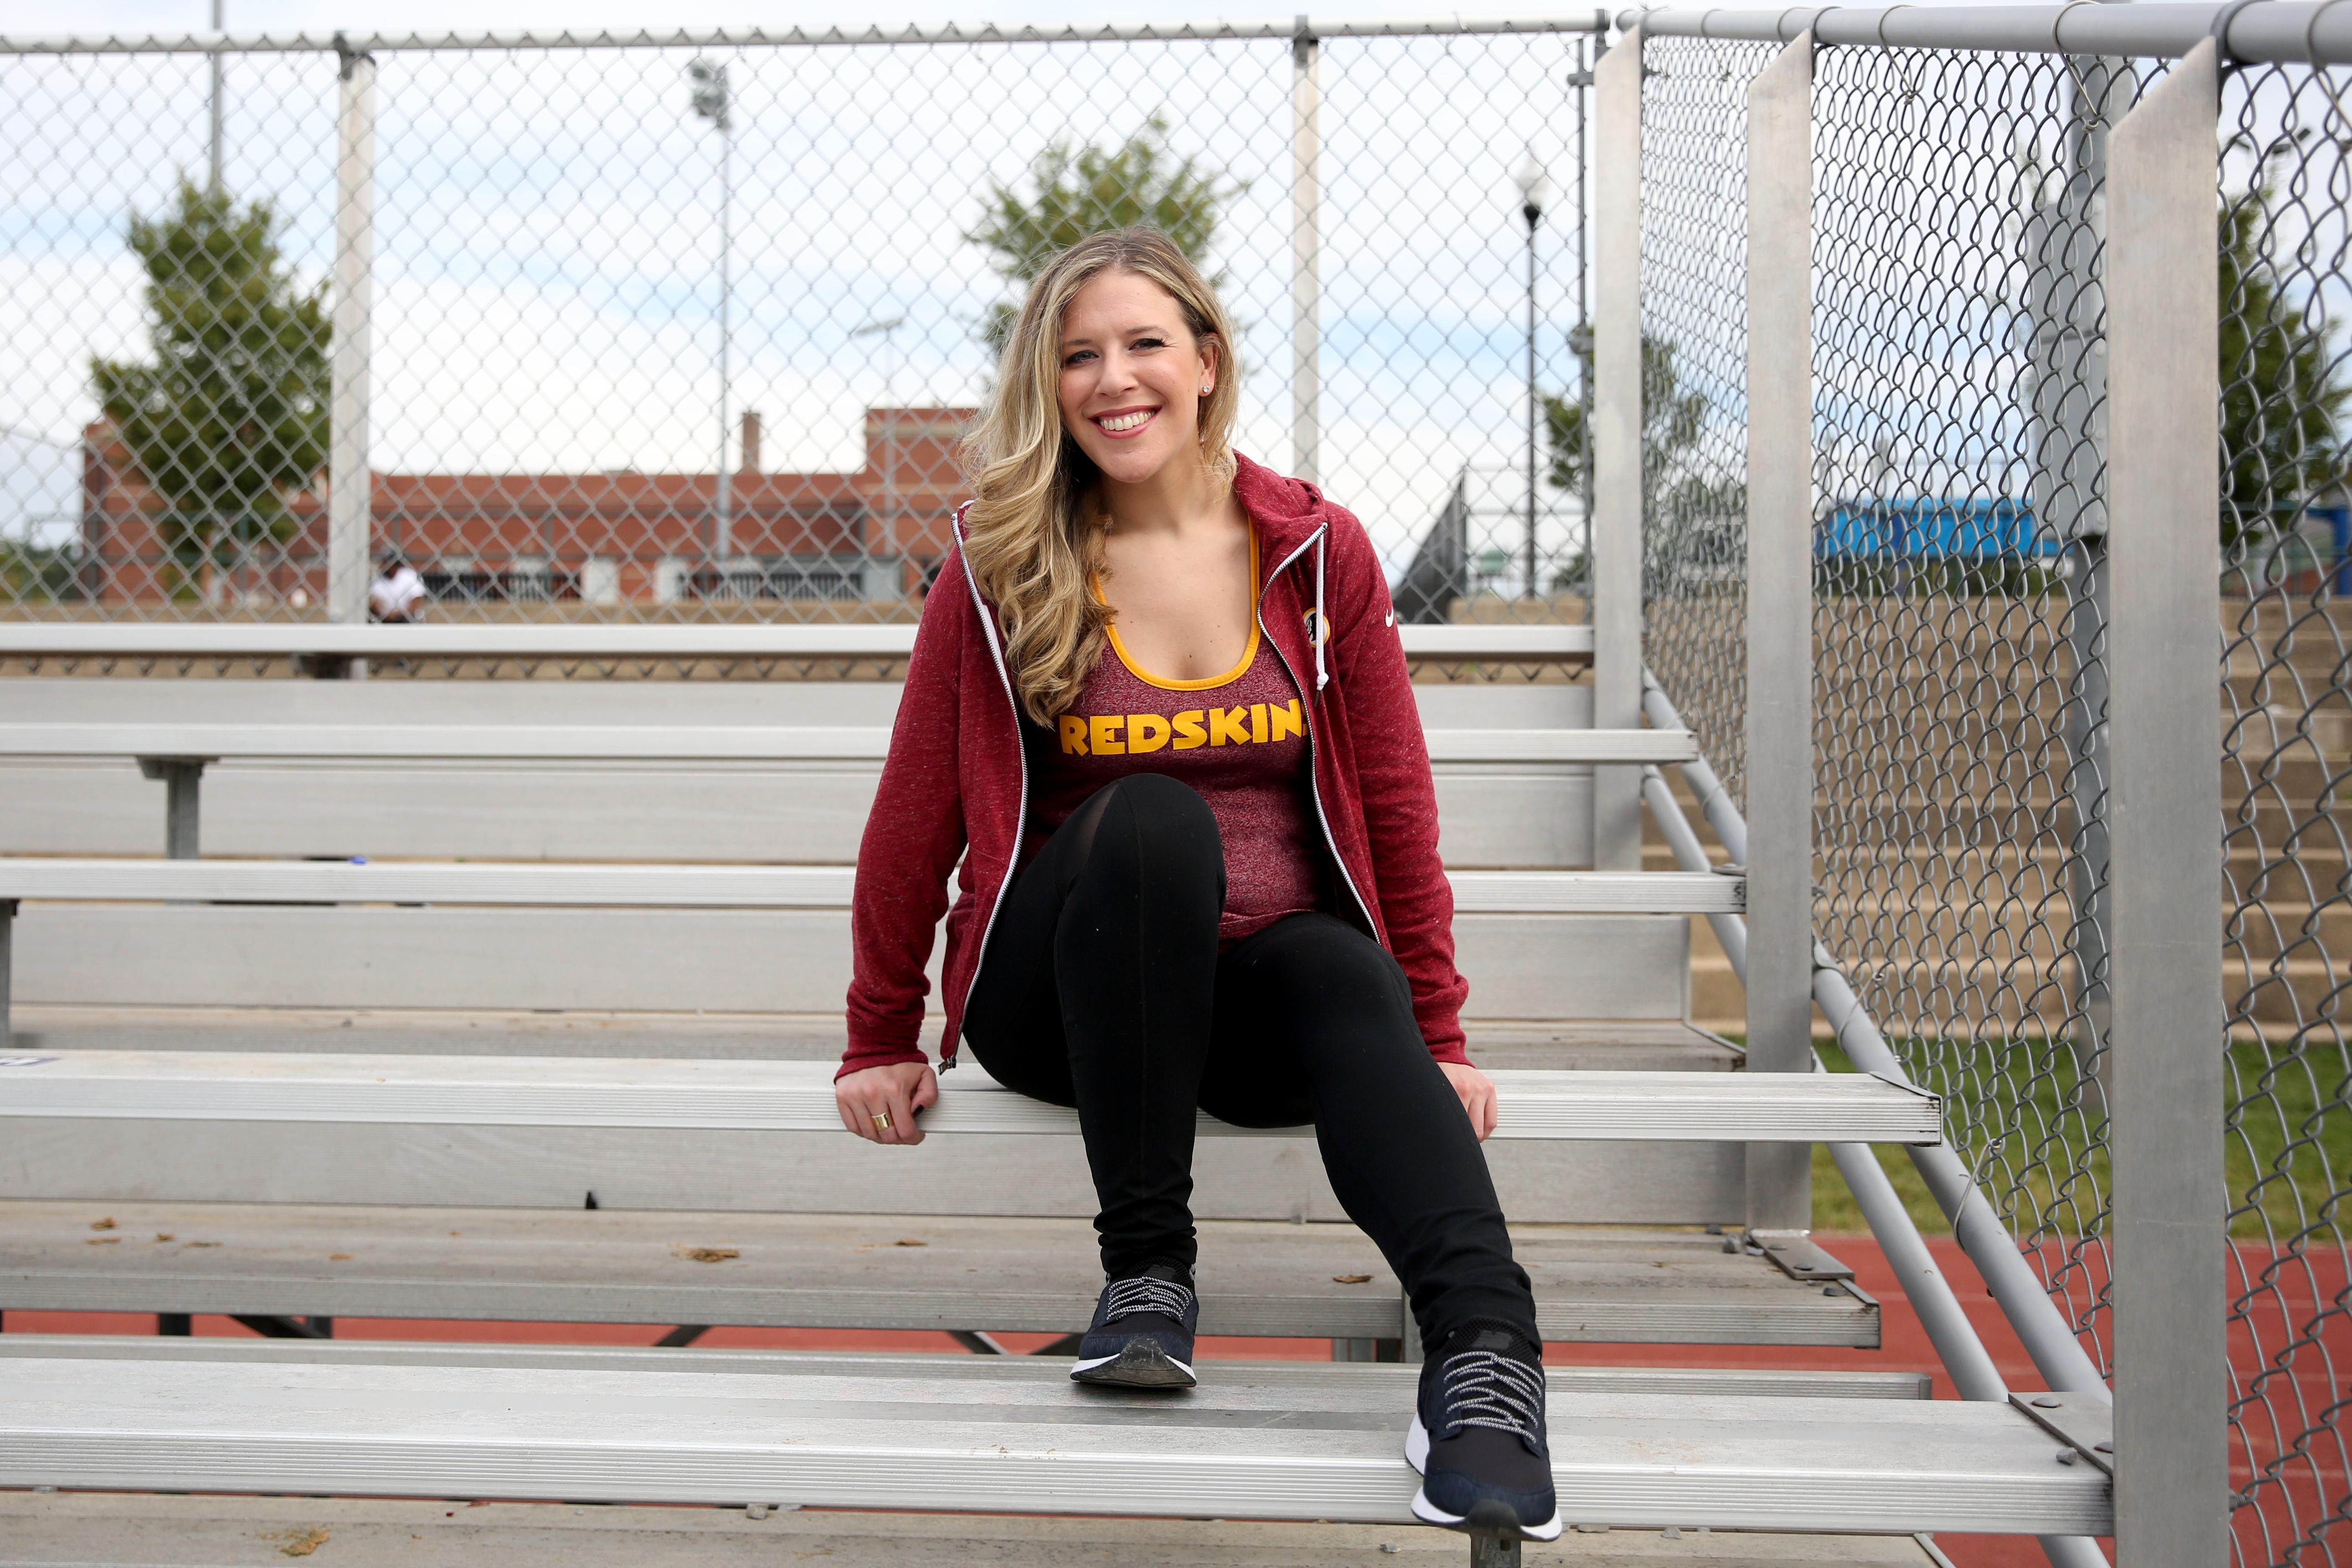 Just wants to be comfortable: A soft redskins racerback tank with its cheerleader sexy vibe gets the job done. Of course you can add a burgundy zip-up if it gets a bit chilly, or you just need to cover up. (Image: Amanda Andrade-Rhoades/ DC Refined)